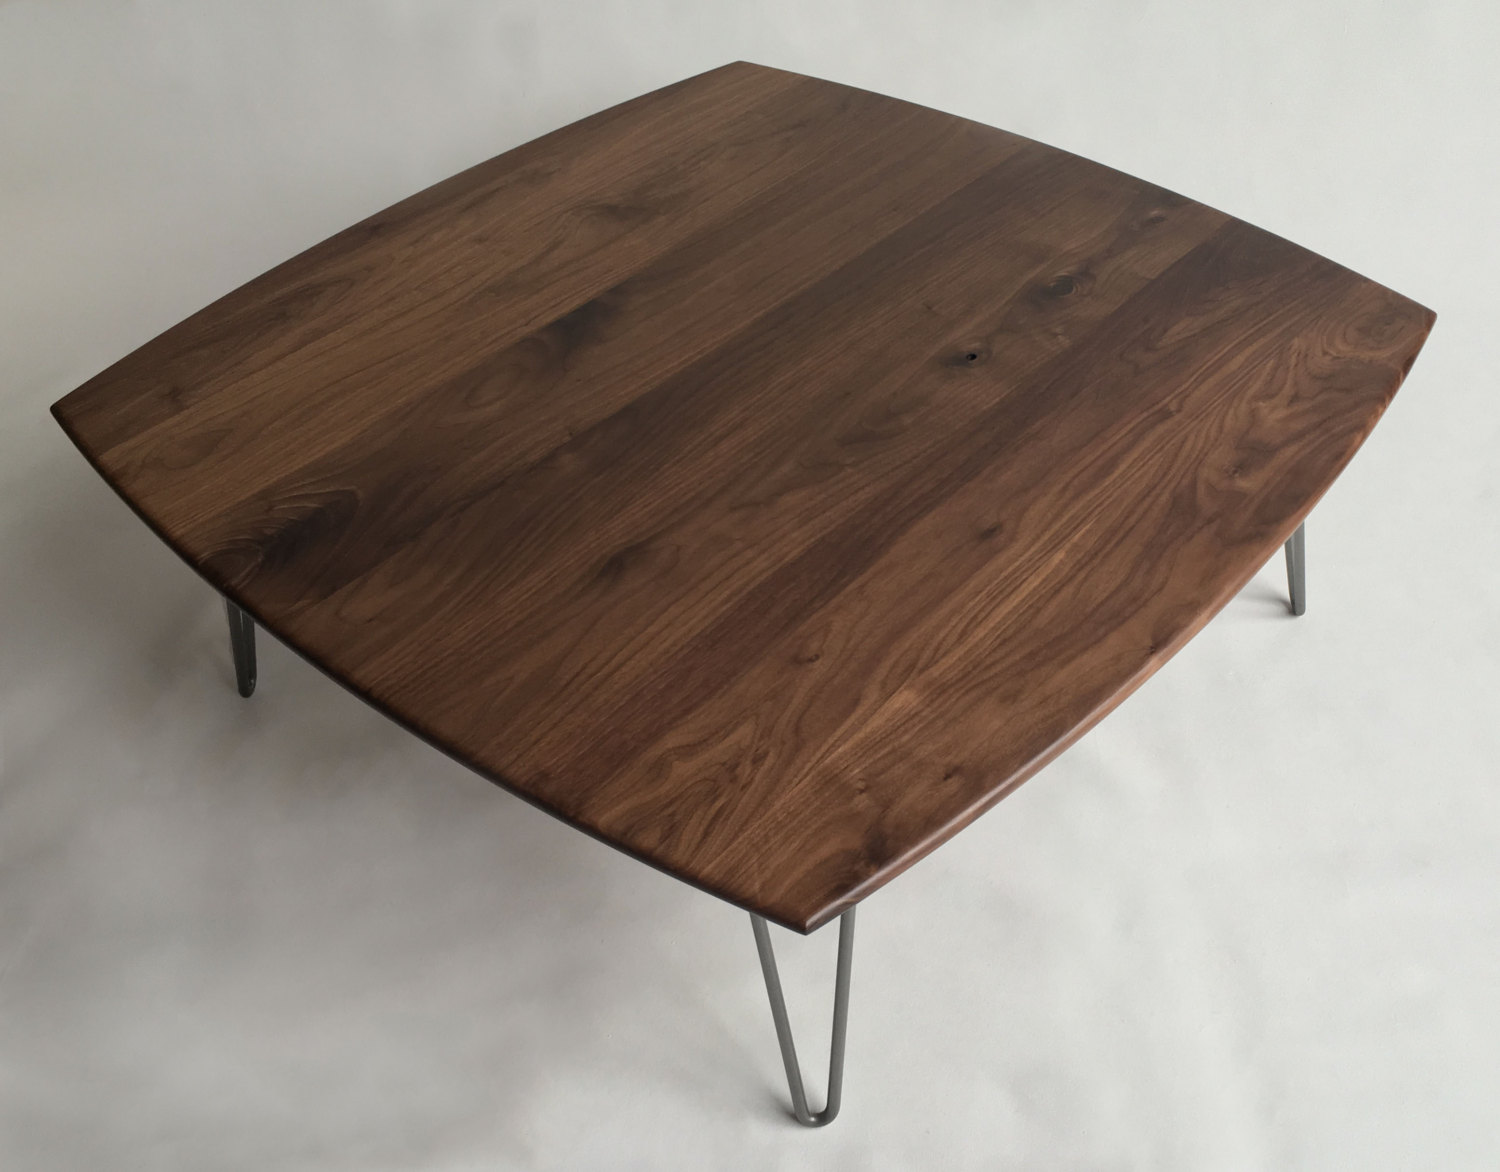 Solid Walnut Square Mid Century Modern Coffee Table